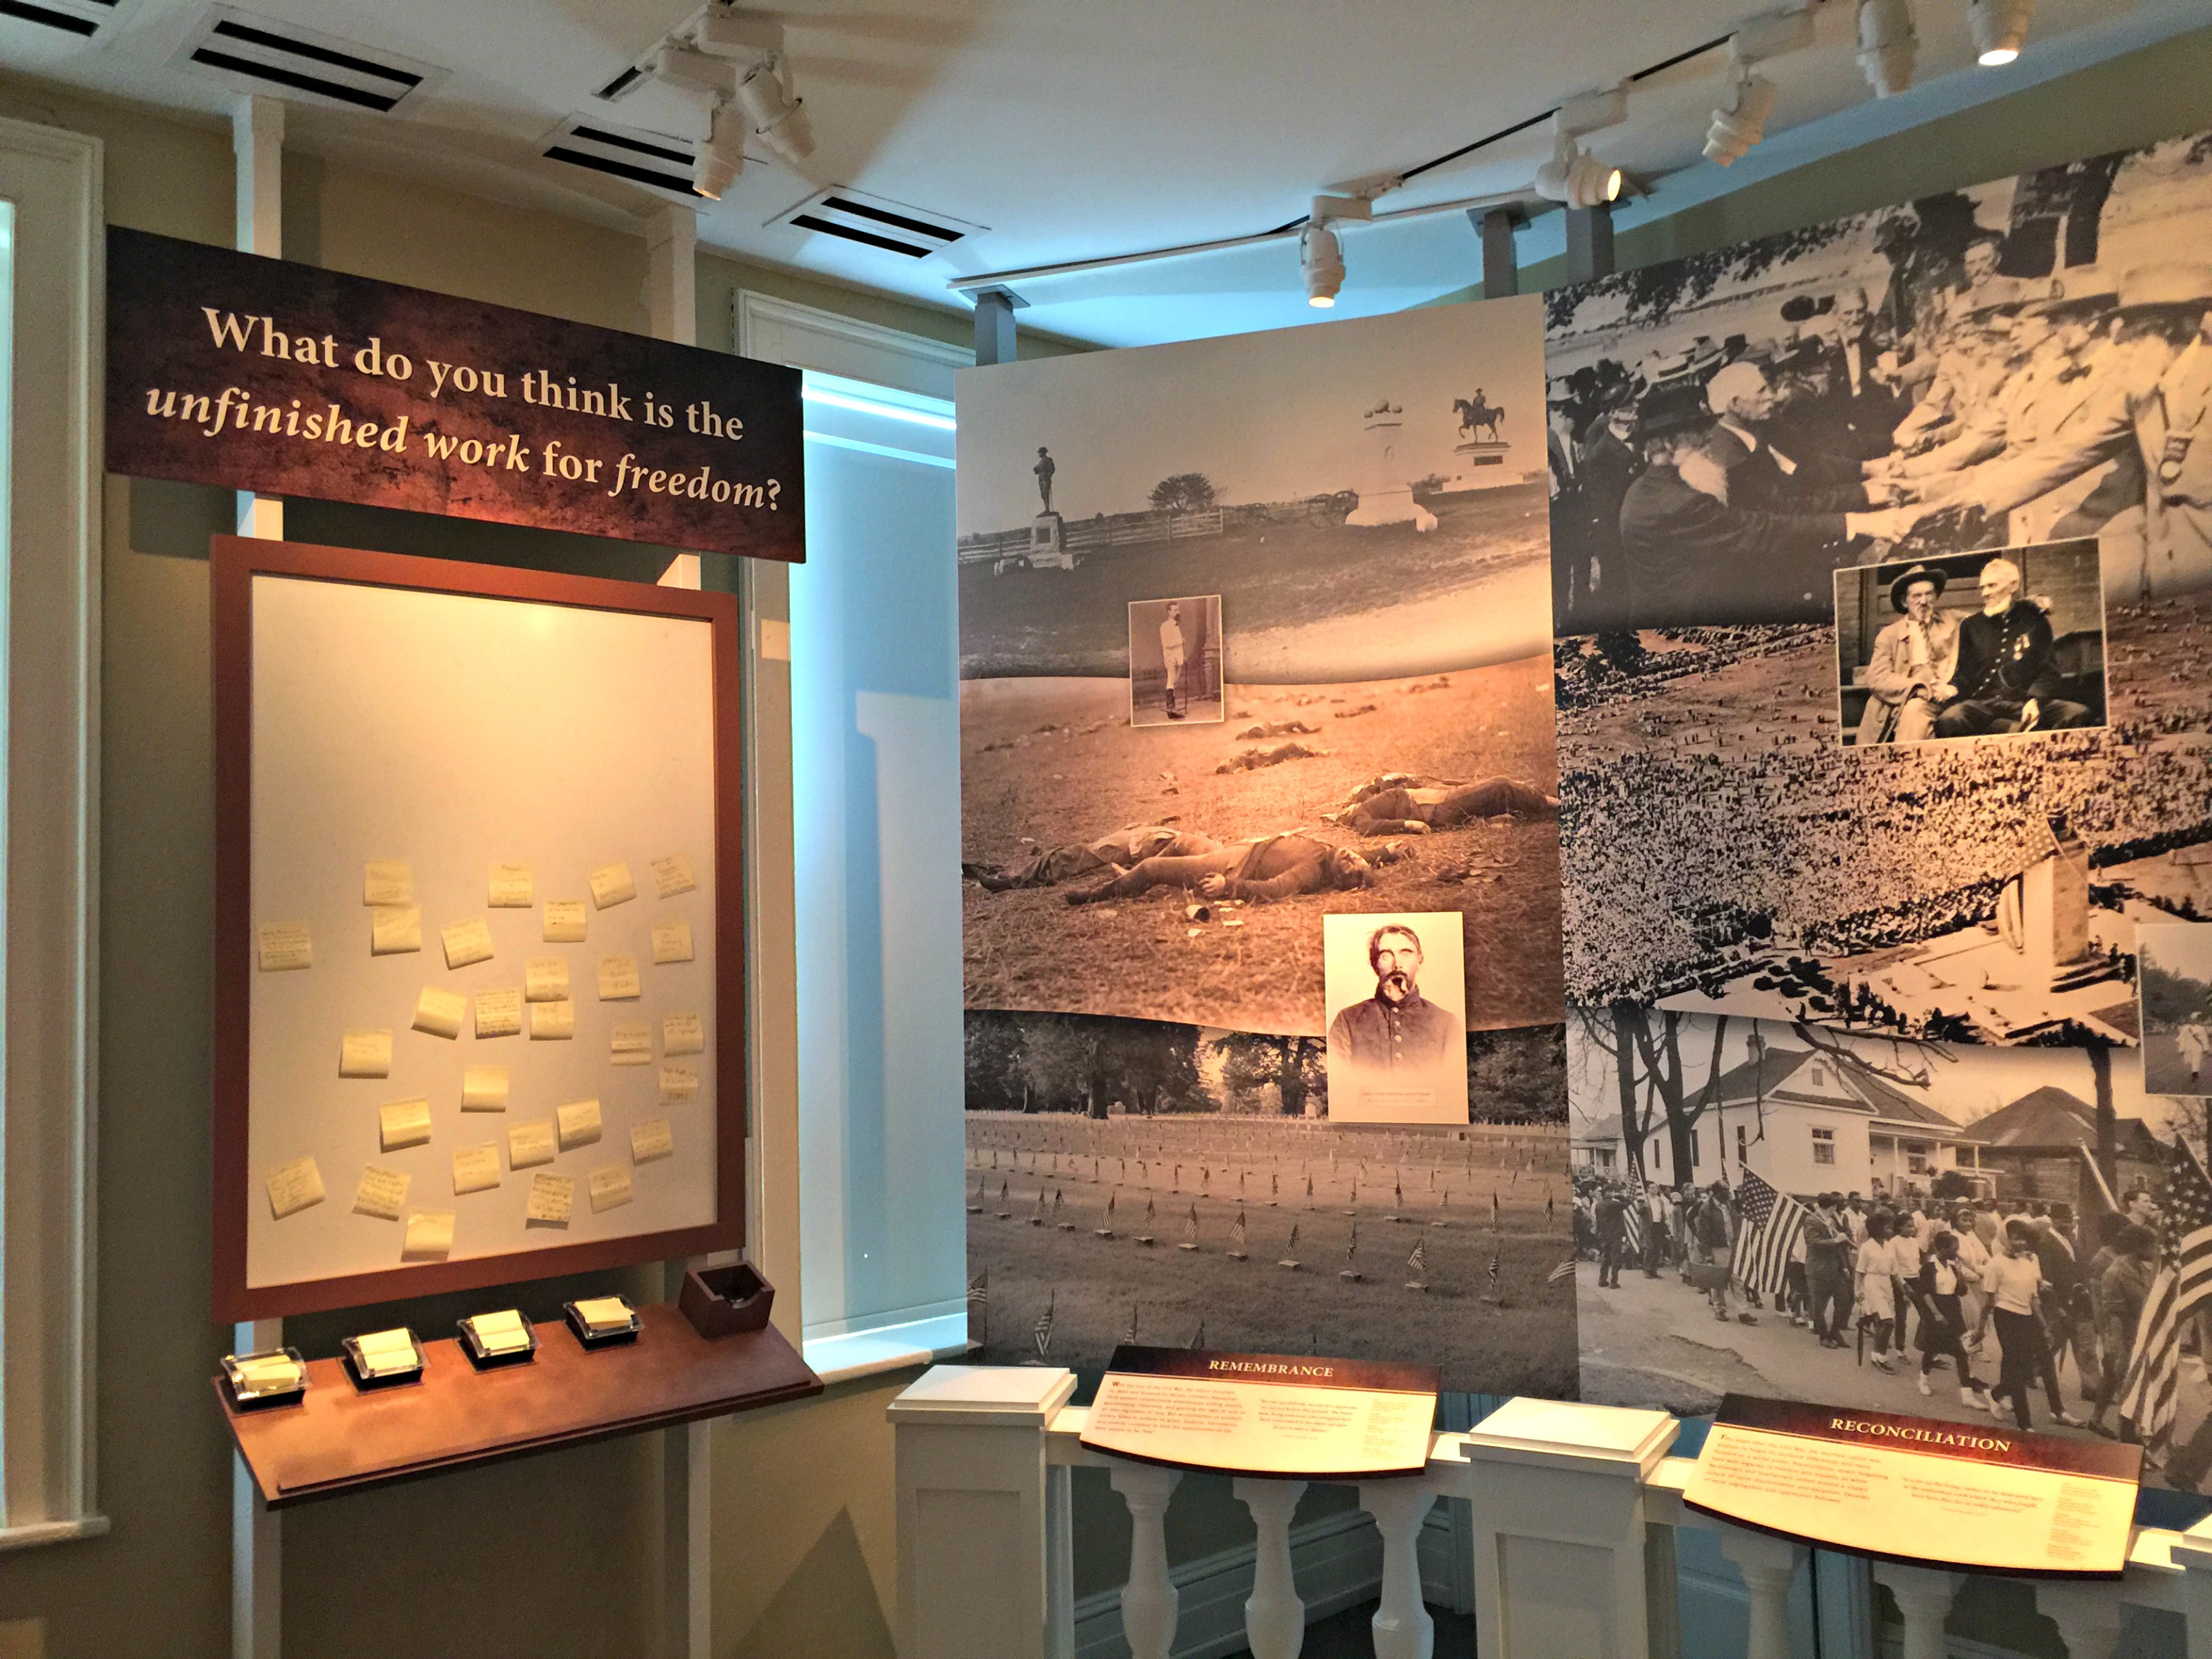 Photograph of a talk-back board at the Seminary Ridge Museum in Gettysburg, Pennsylvania. The question reads: What do you thin is the unfinished work for freedom?